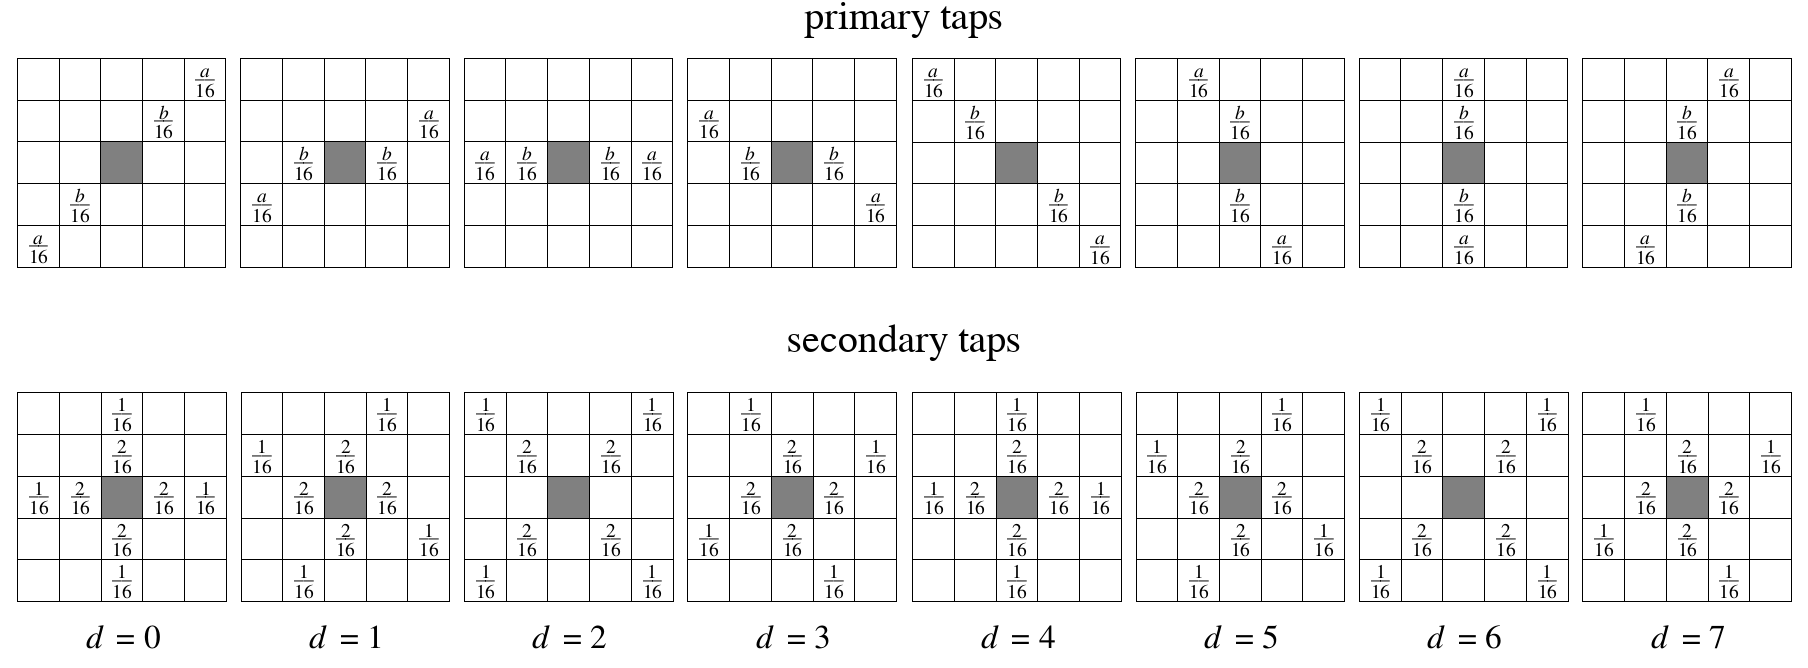 illustration of primary and secondary taps